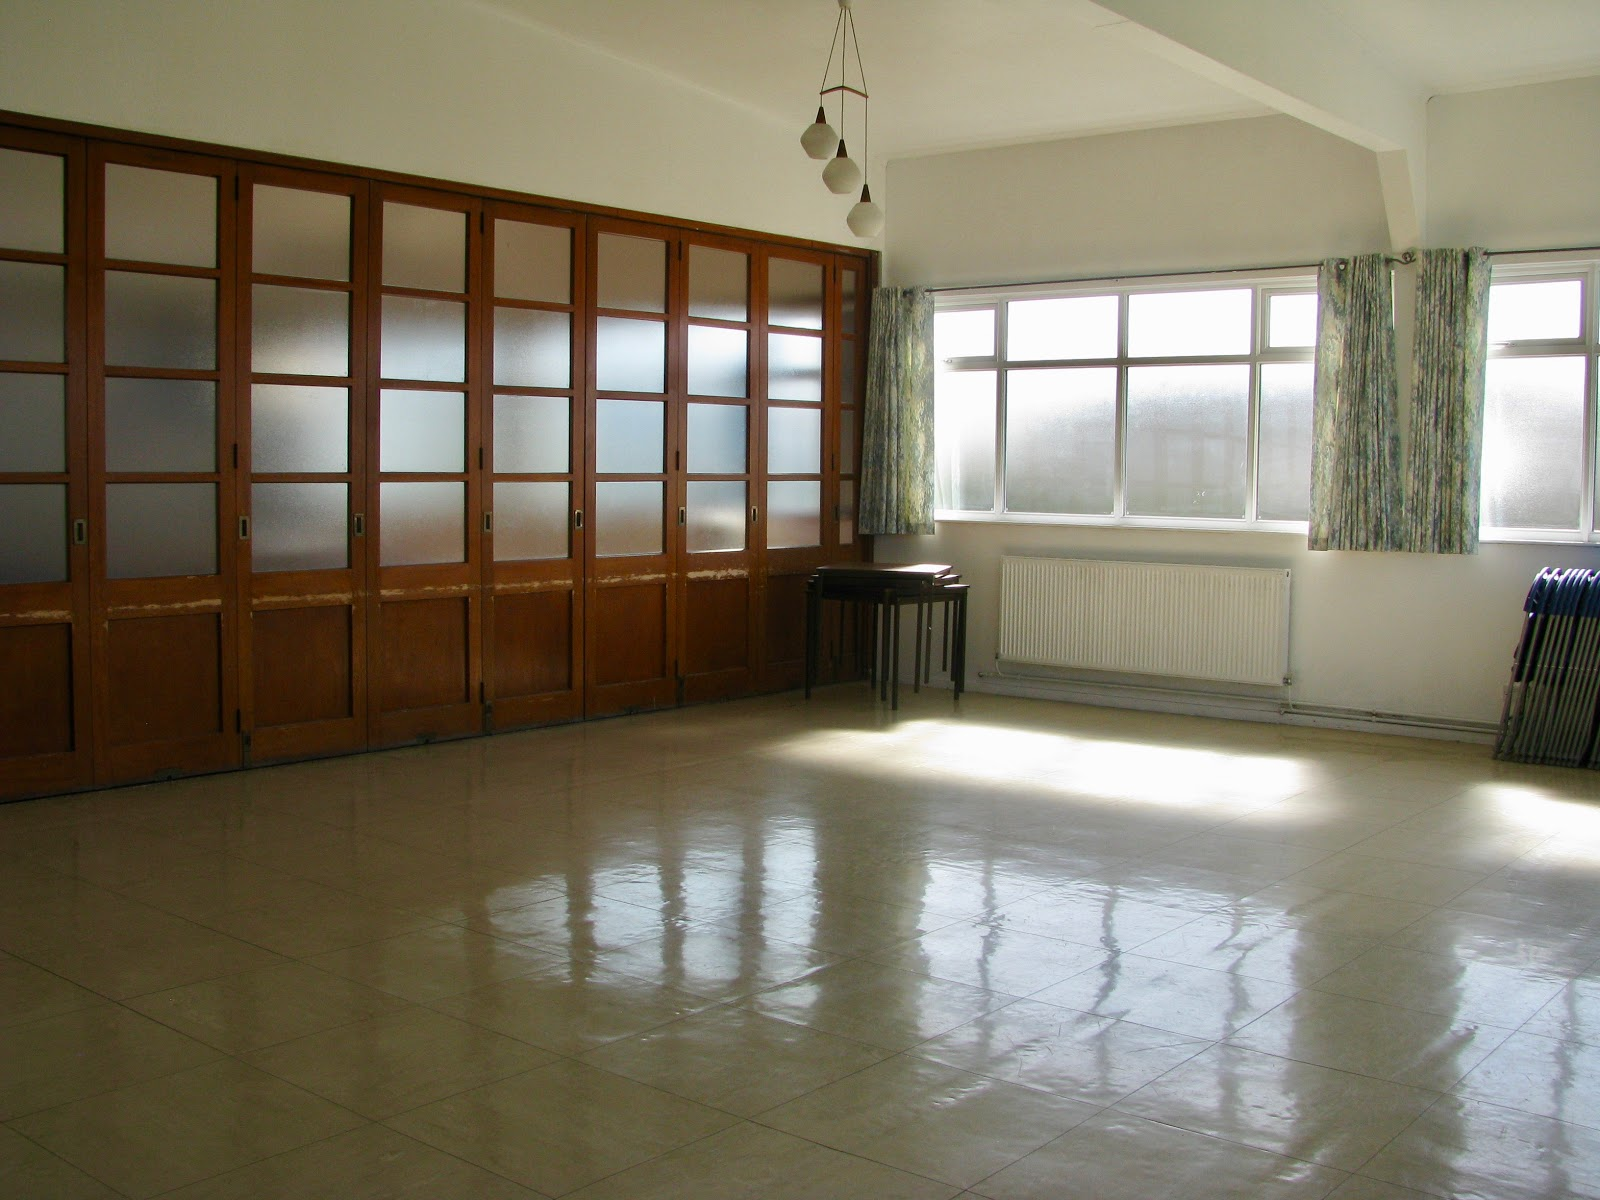 Showing floor space with linoleum floor, white walls, windows with sun shining through